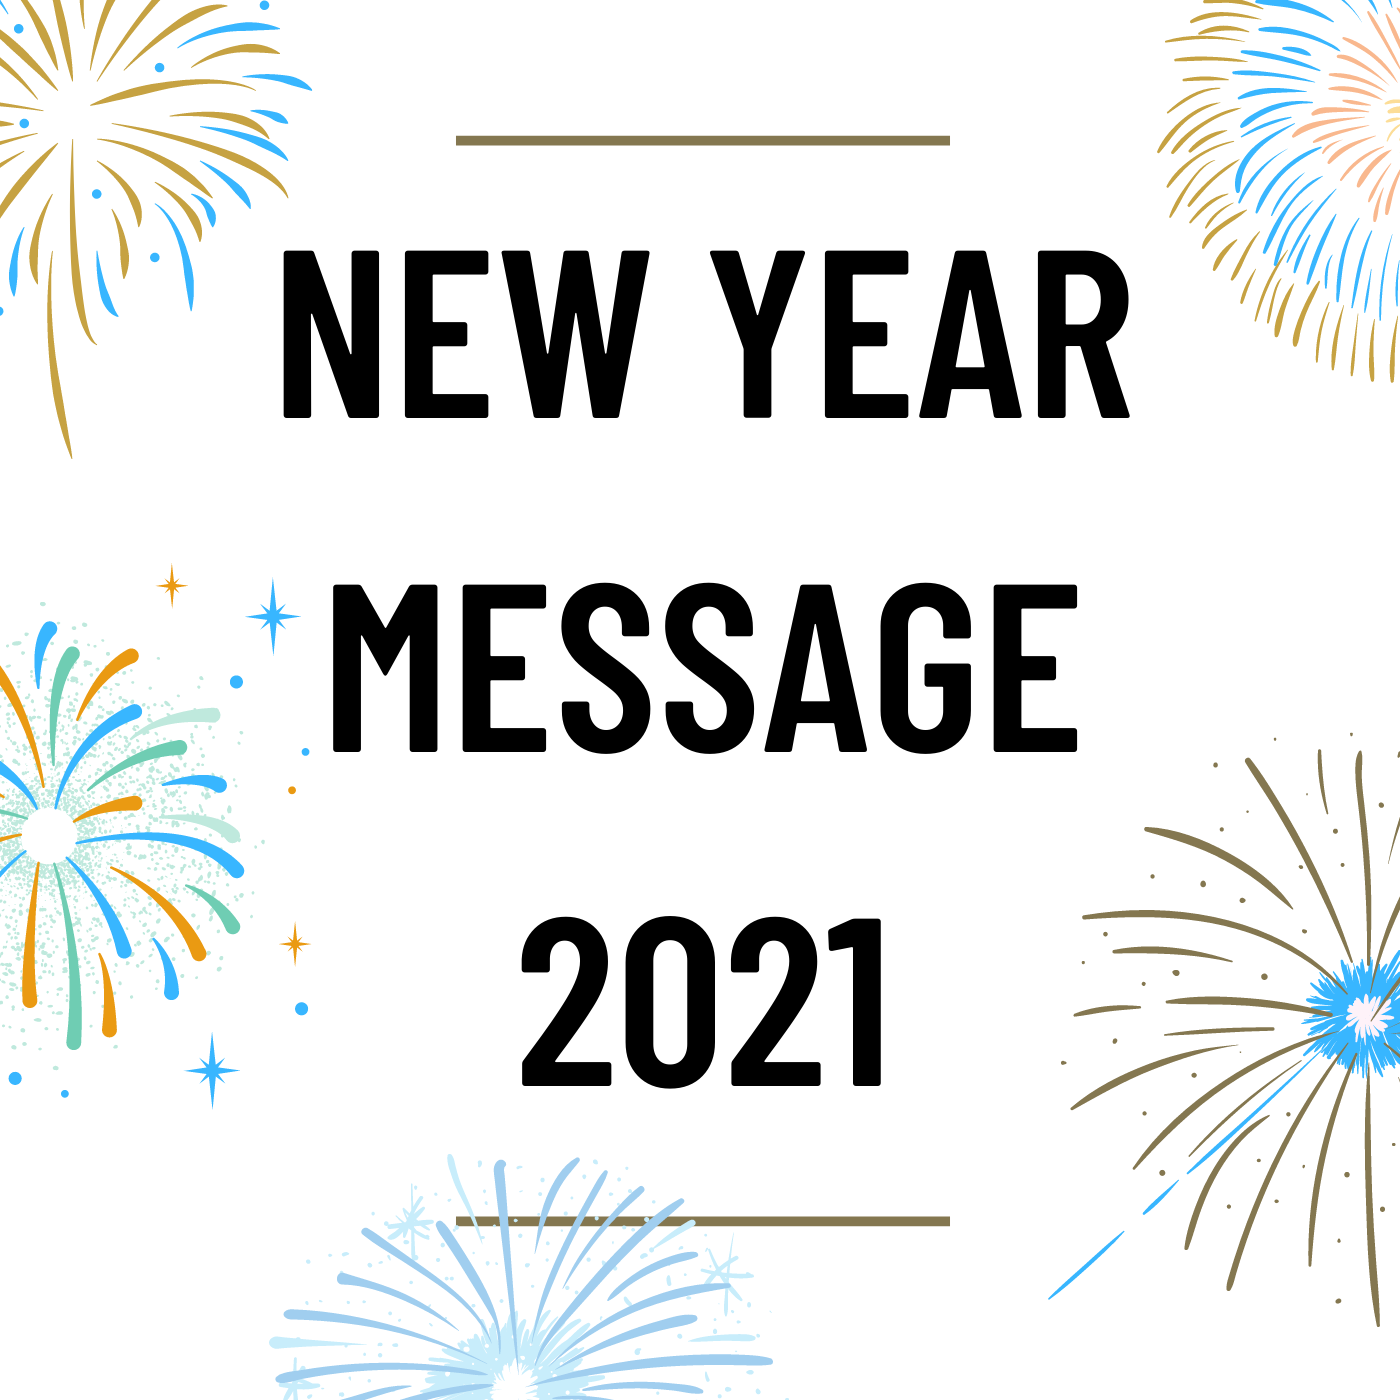 MS73 - New Year Message 2021